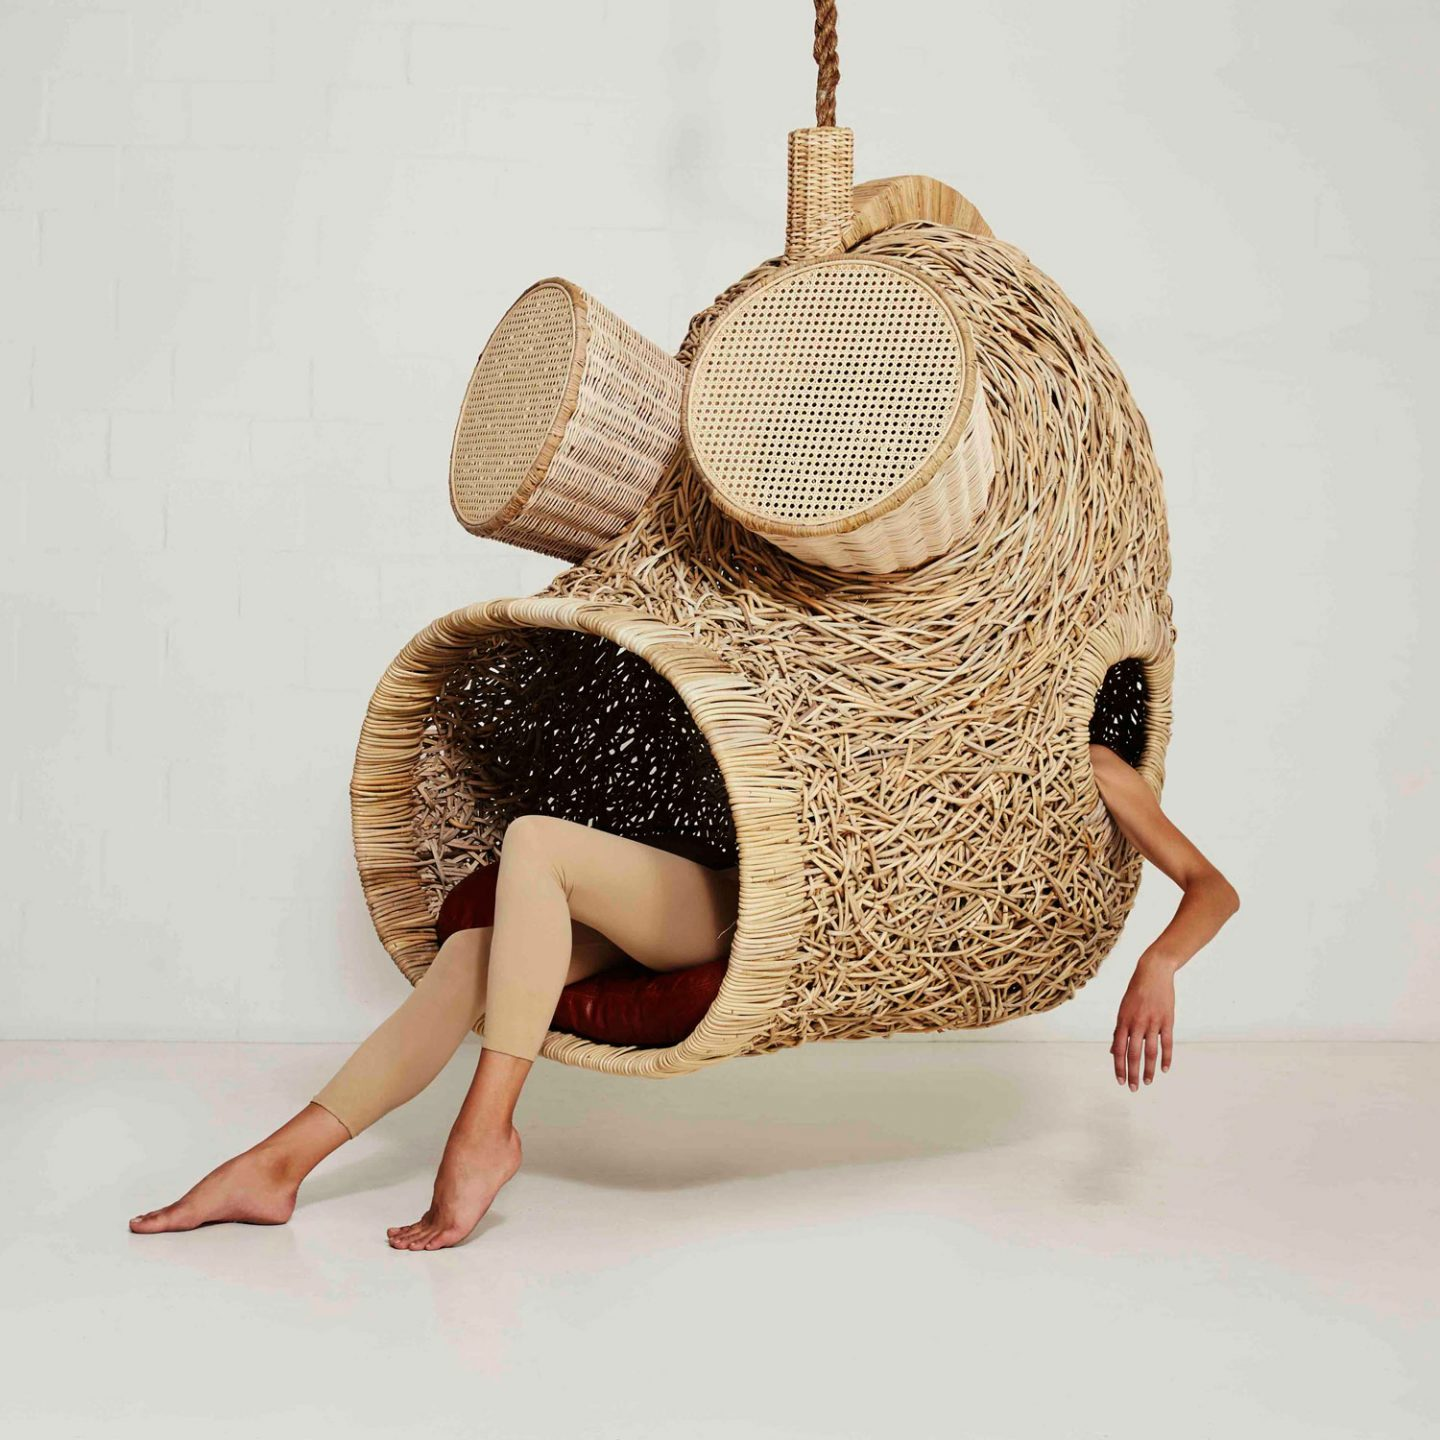 ignant_design_Suspended-Sofas-Cocoons-and-Nests-by-Porky-Hefer_001